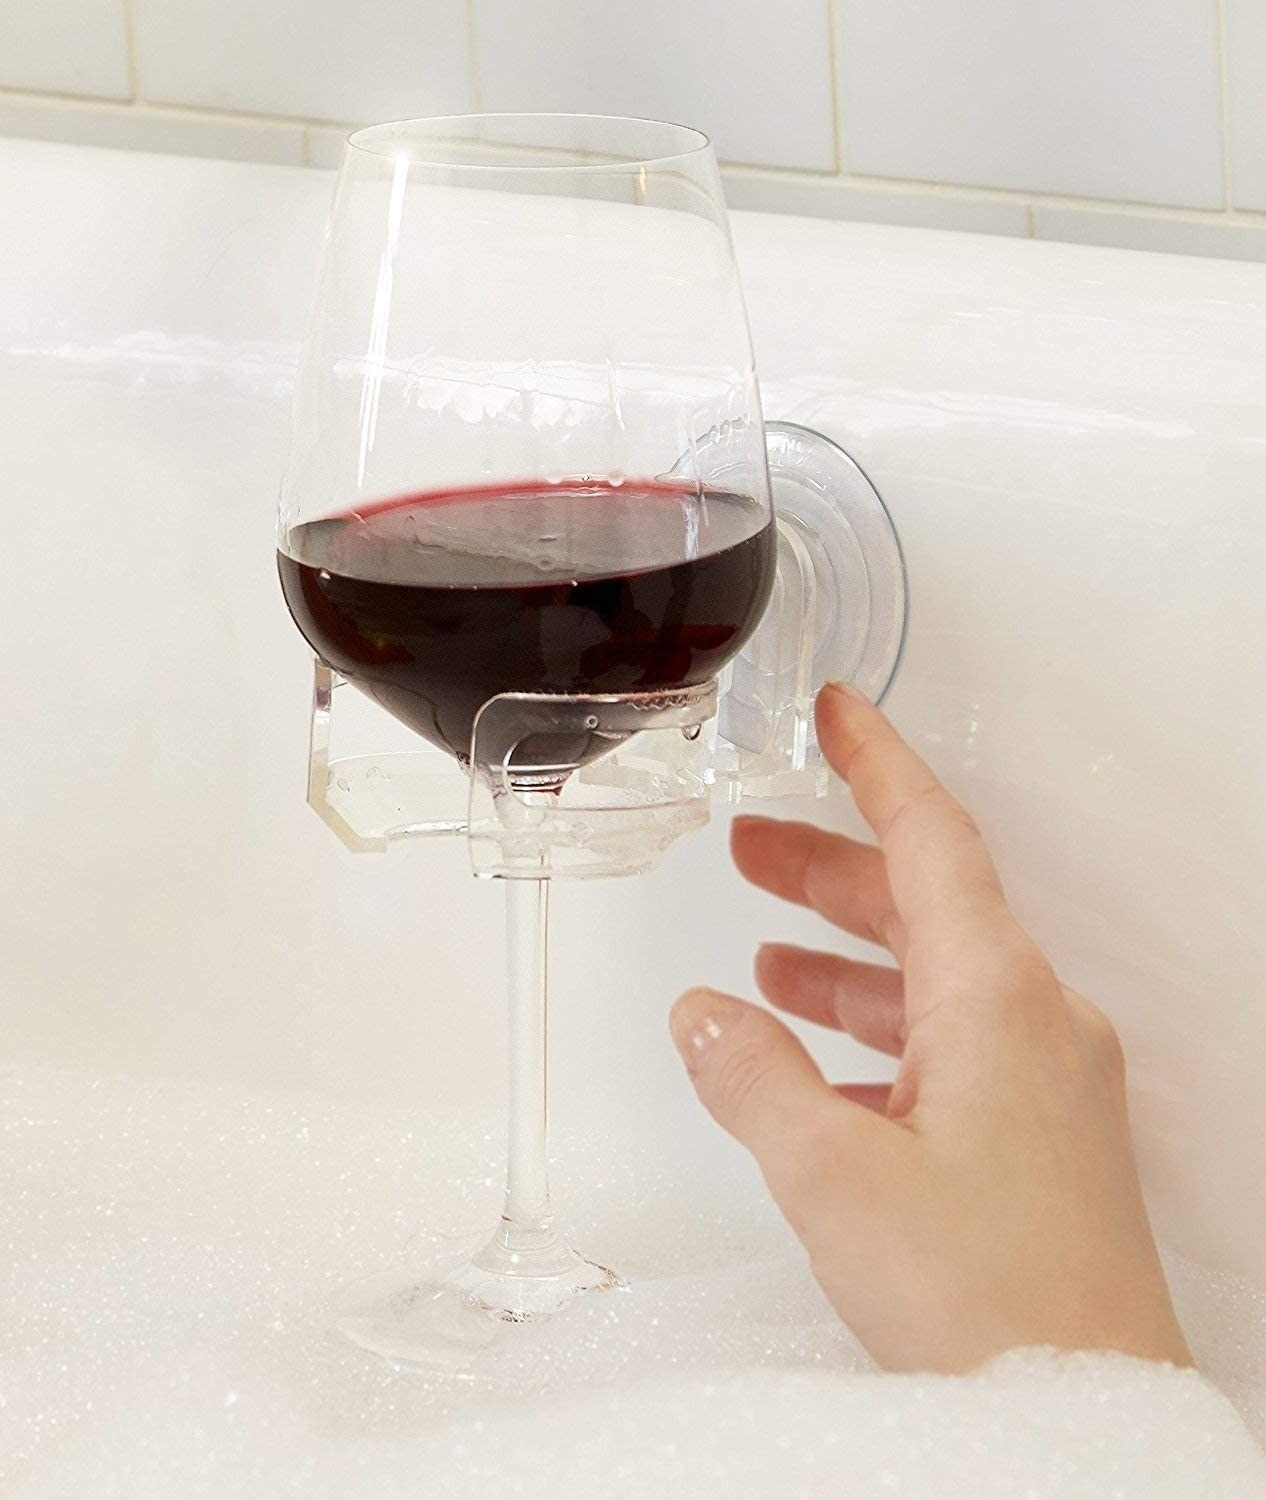 model holding wine glass in the suction cupholder